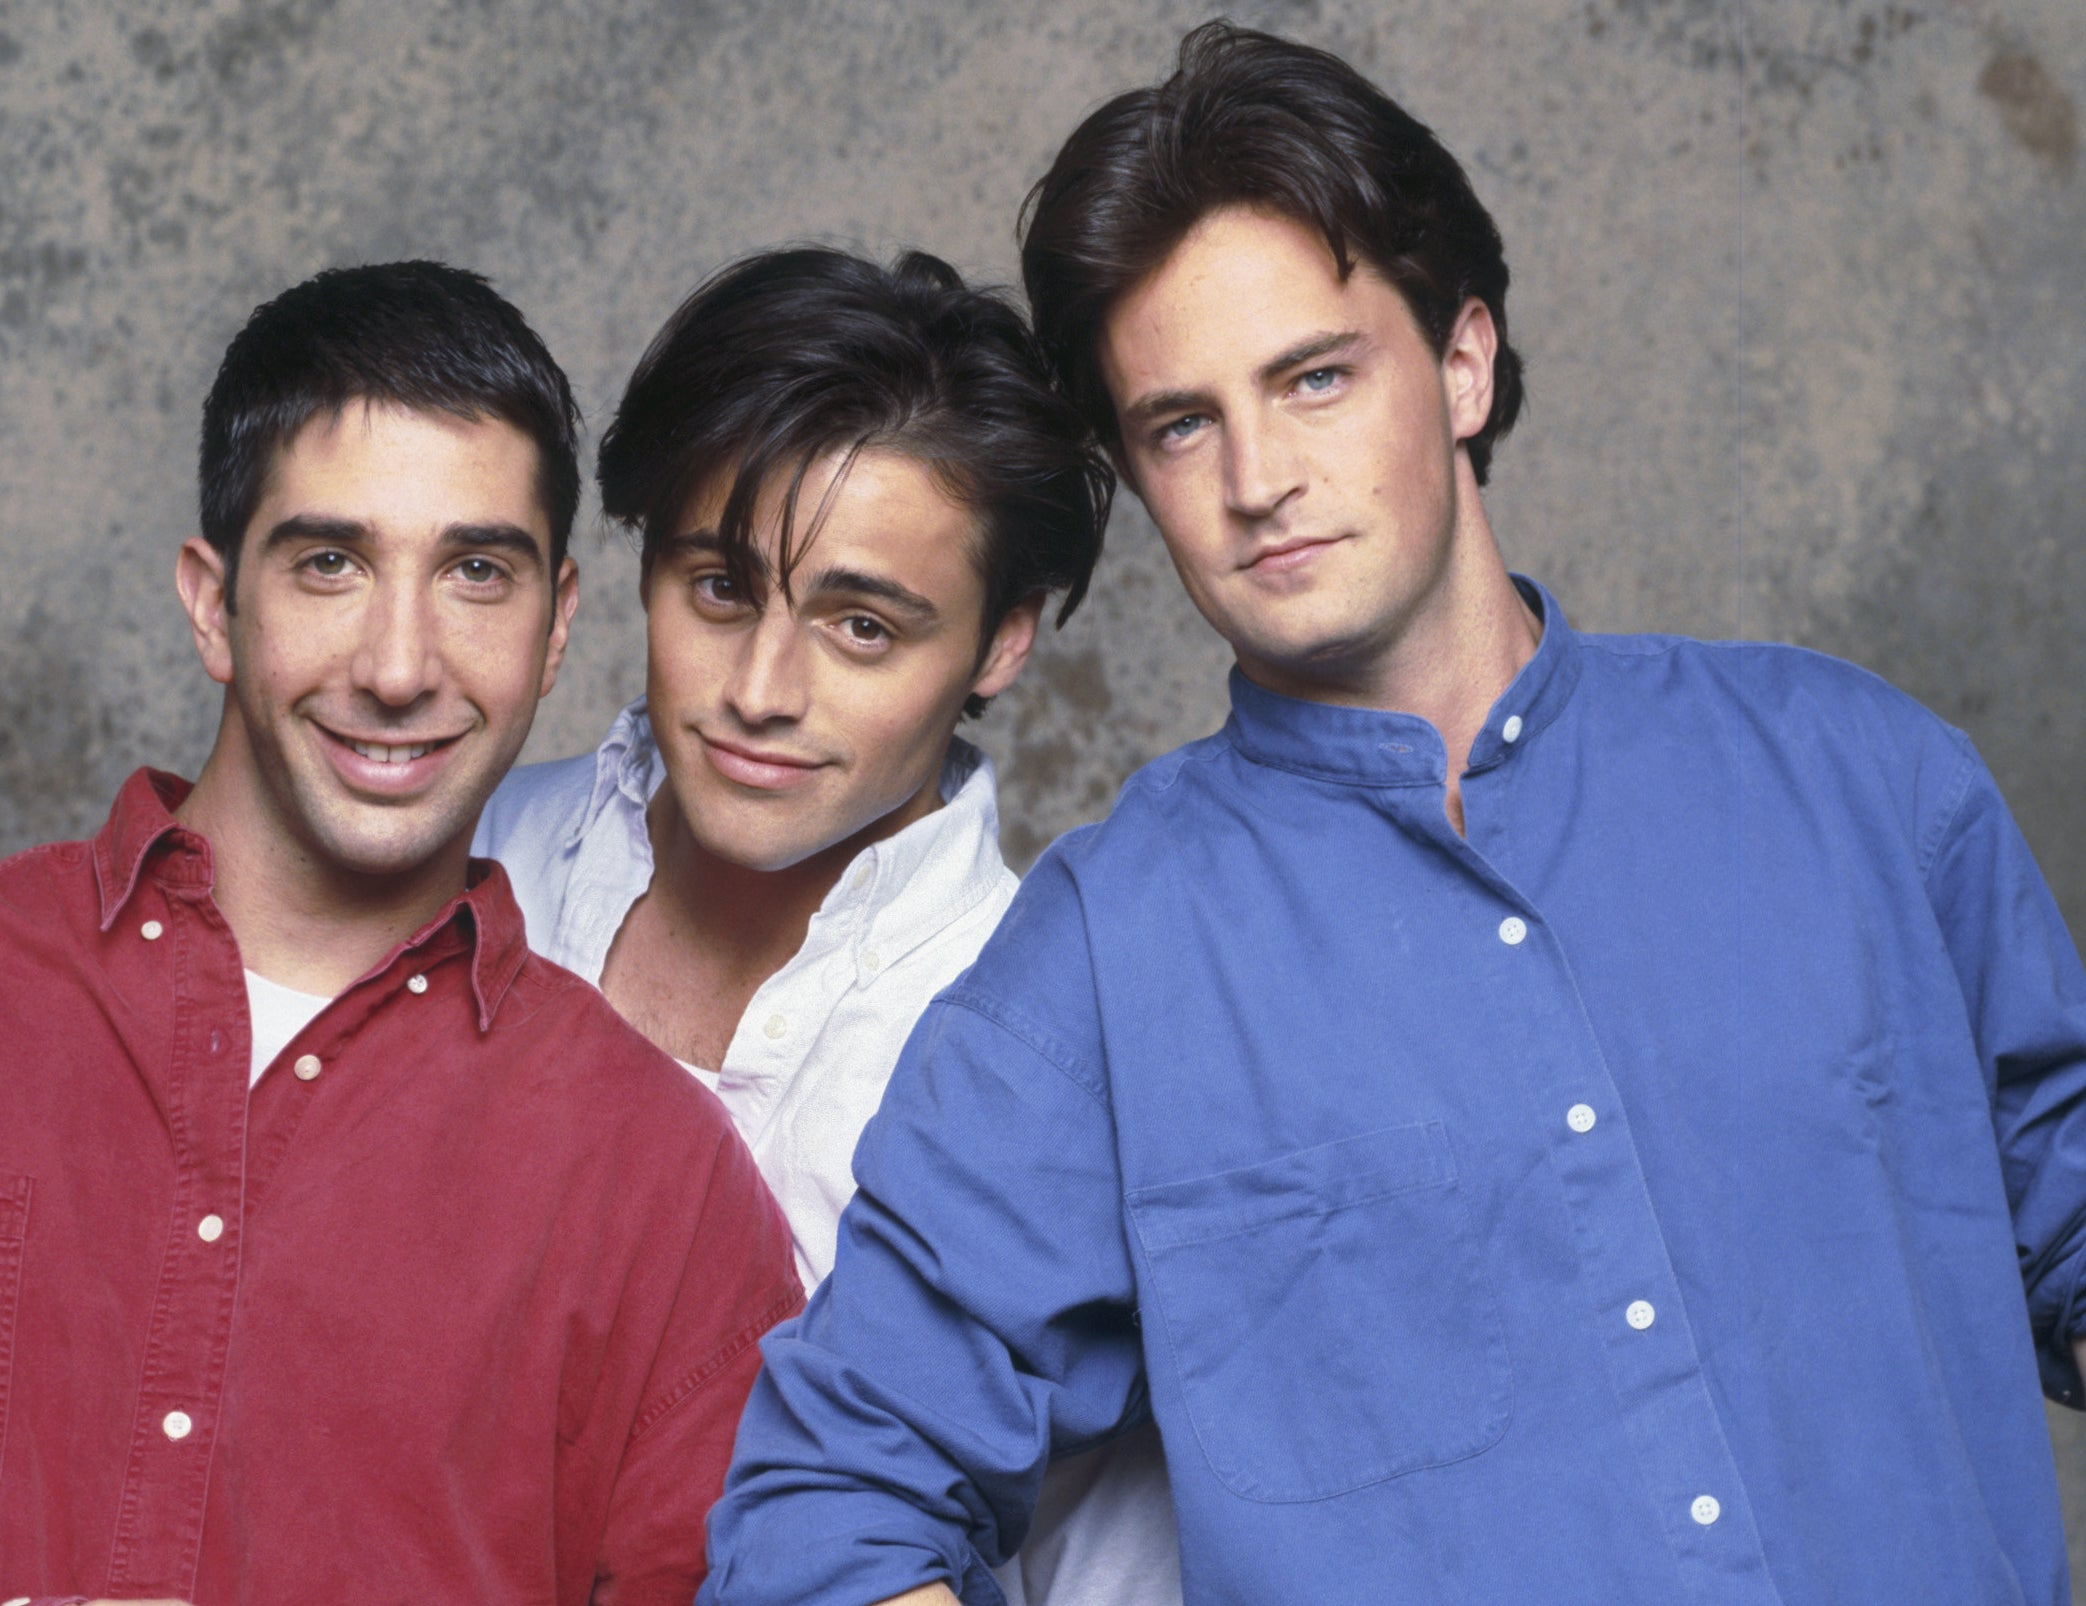 Matthew poses with Matt LeBlanc and David Schwimmer during the 90s